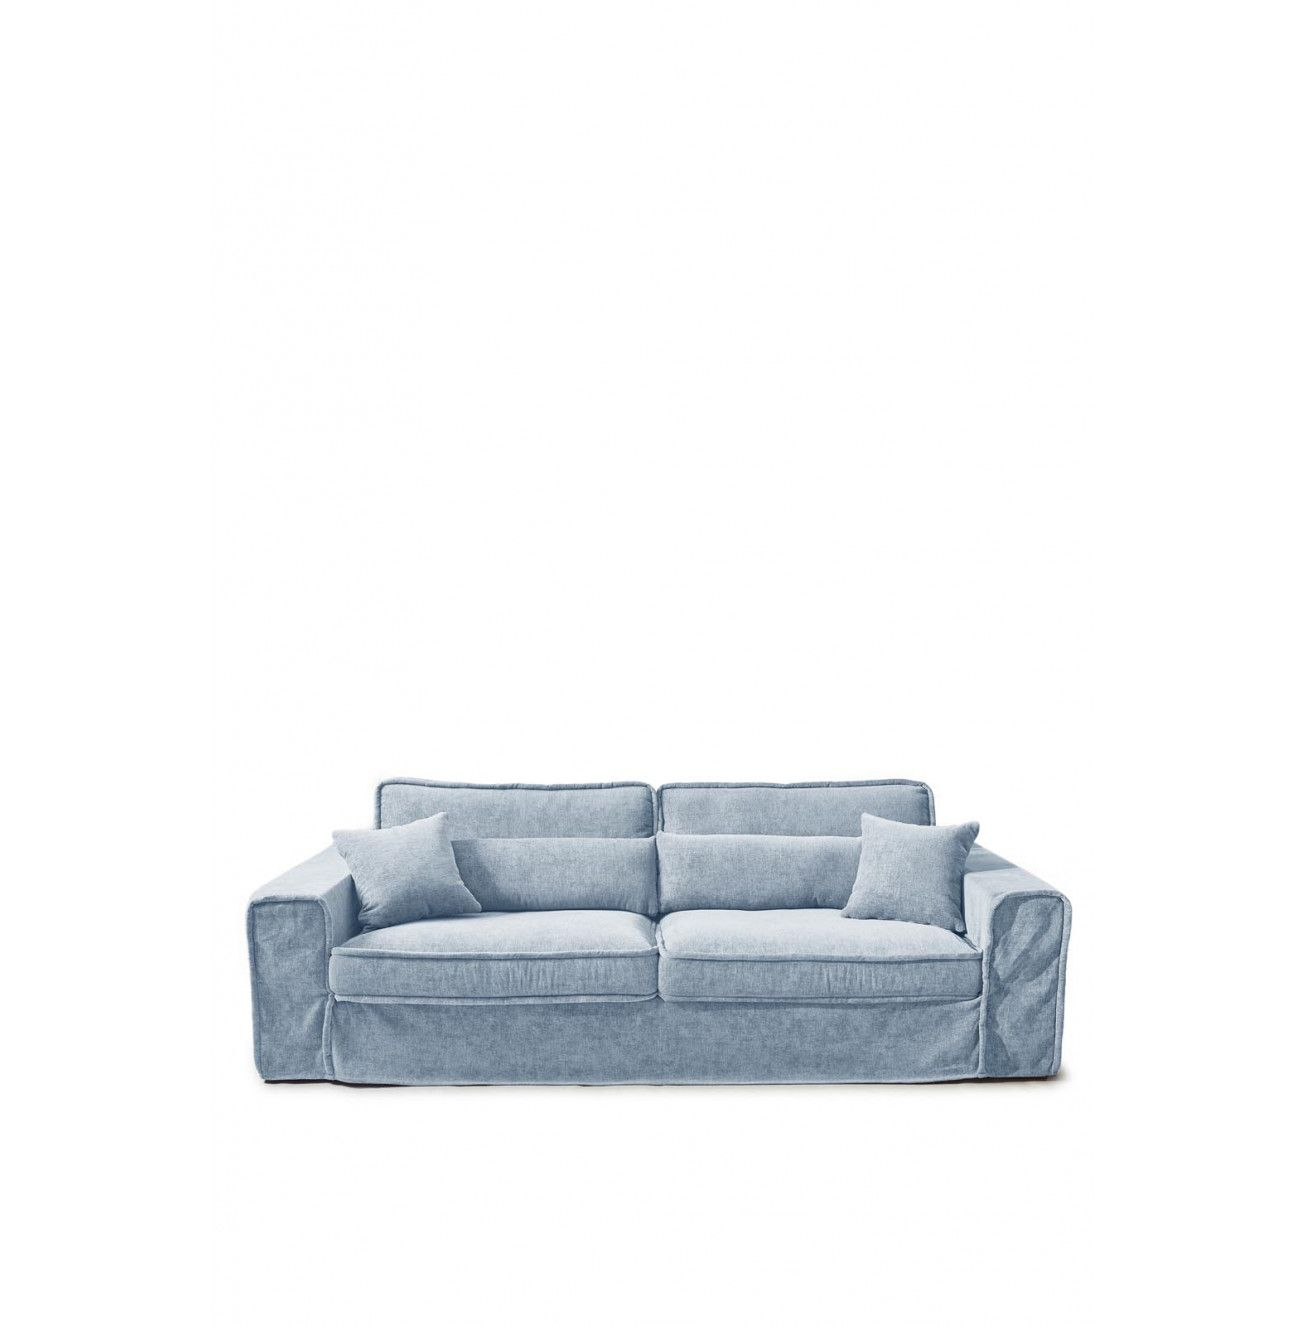 Ecksofa Fireside Metropolis Sofa 3 5 Seater Velvet Light Blue In 2019